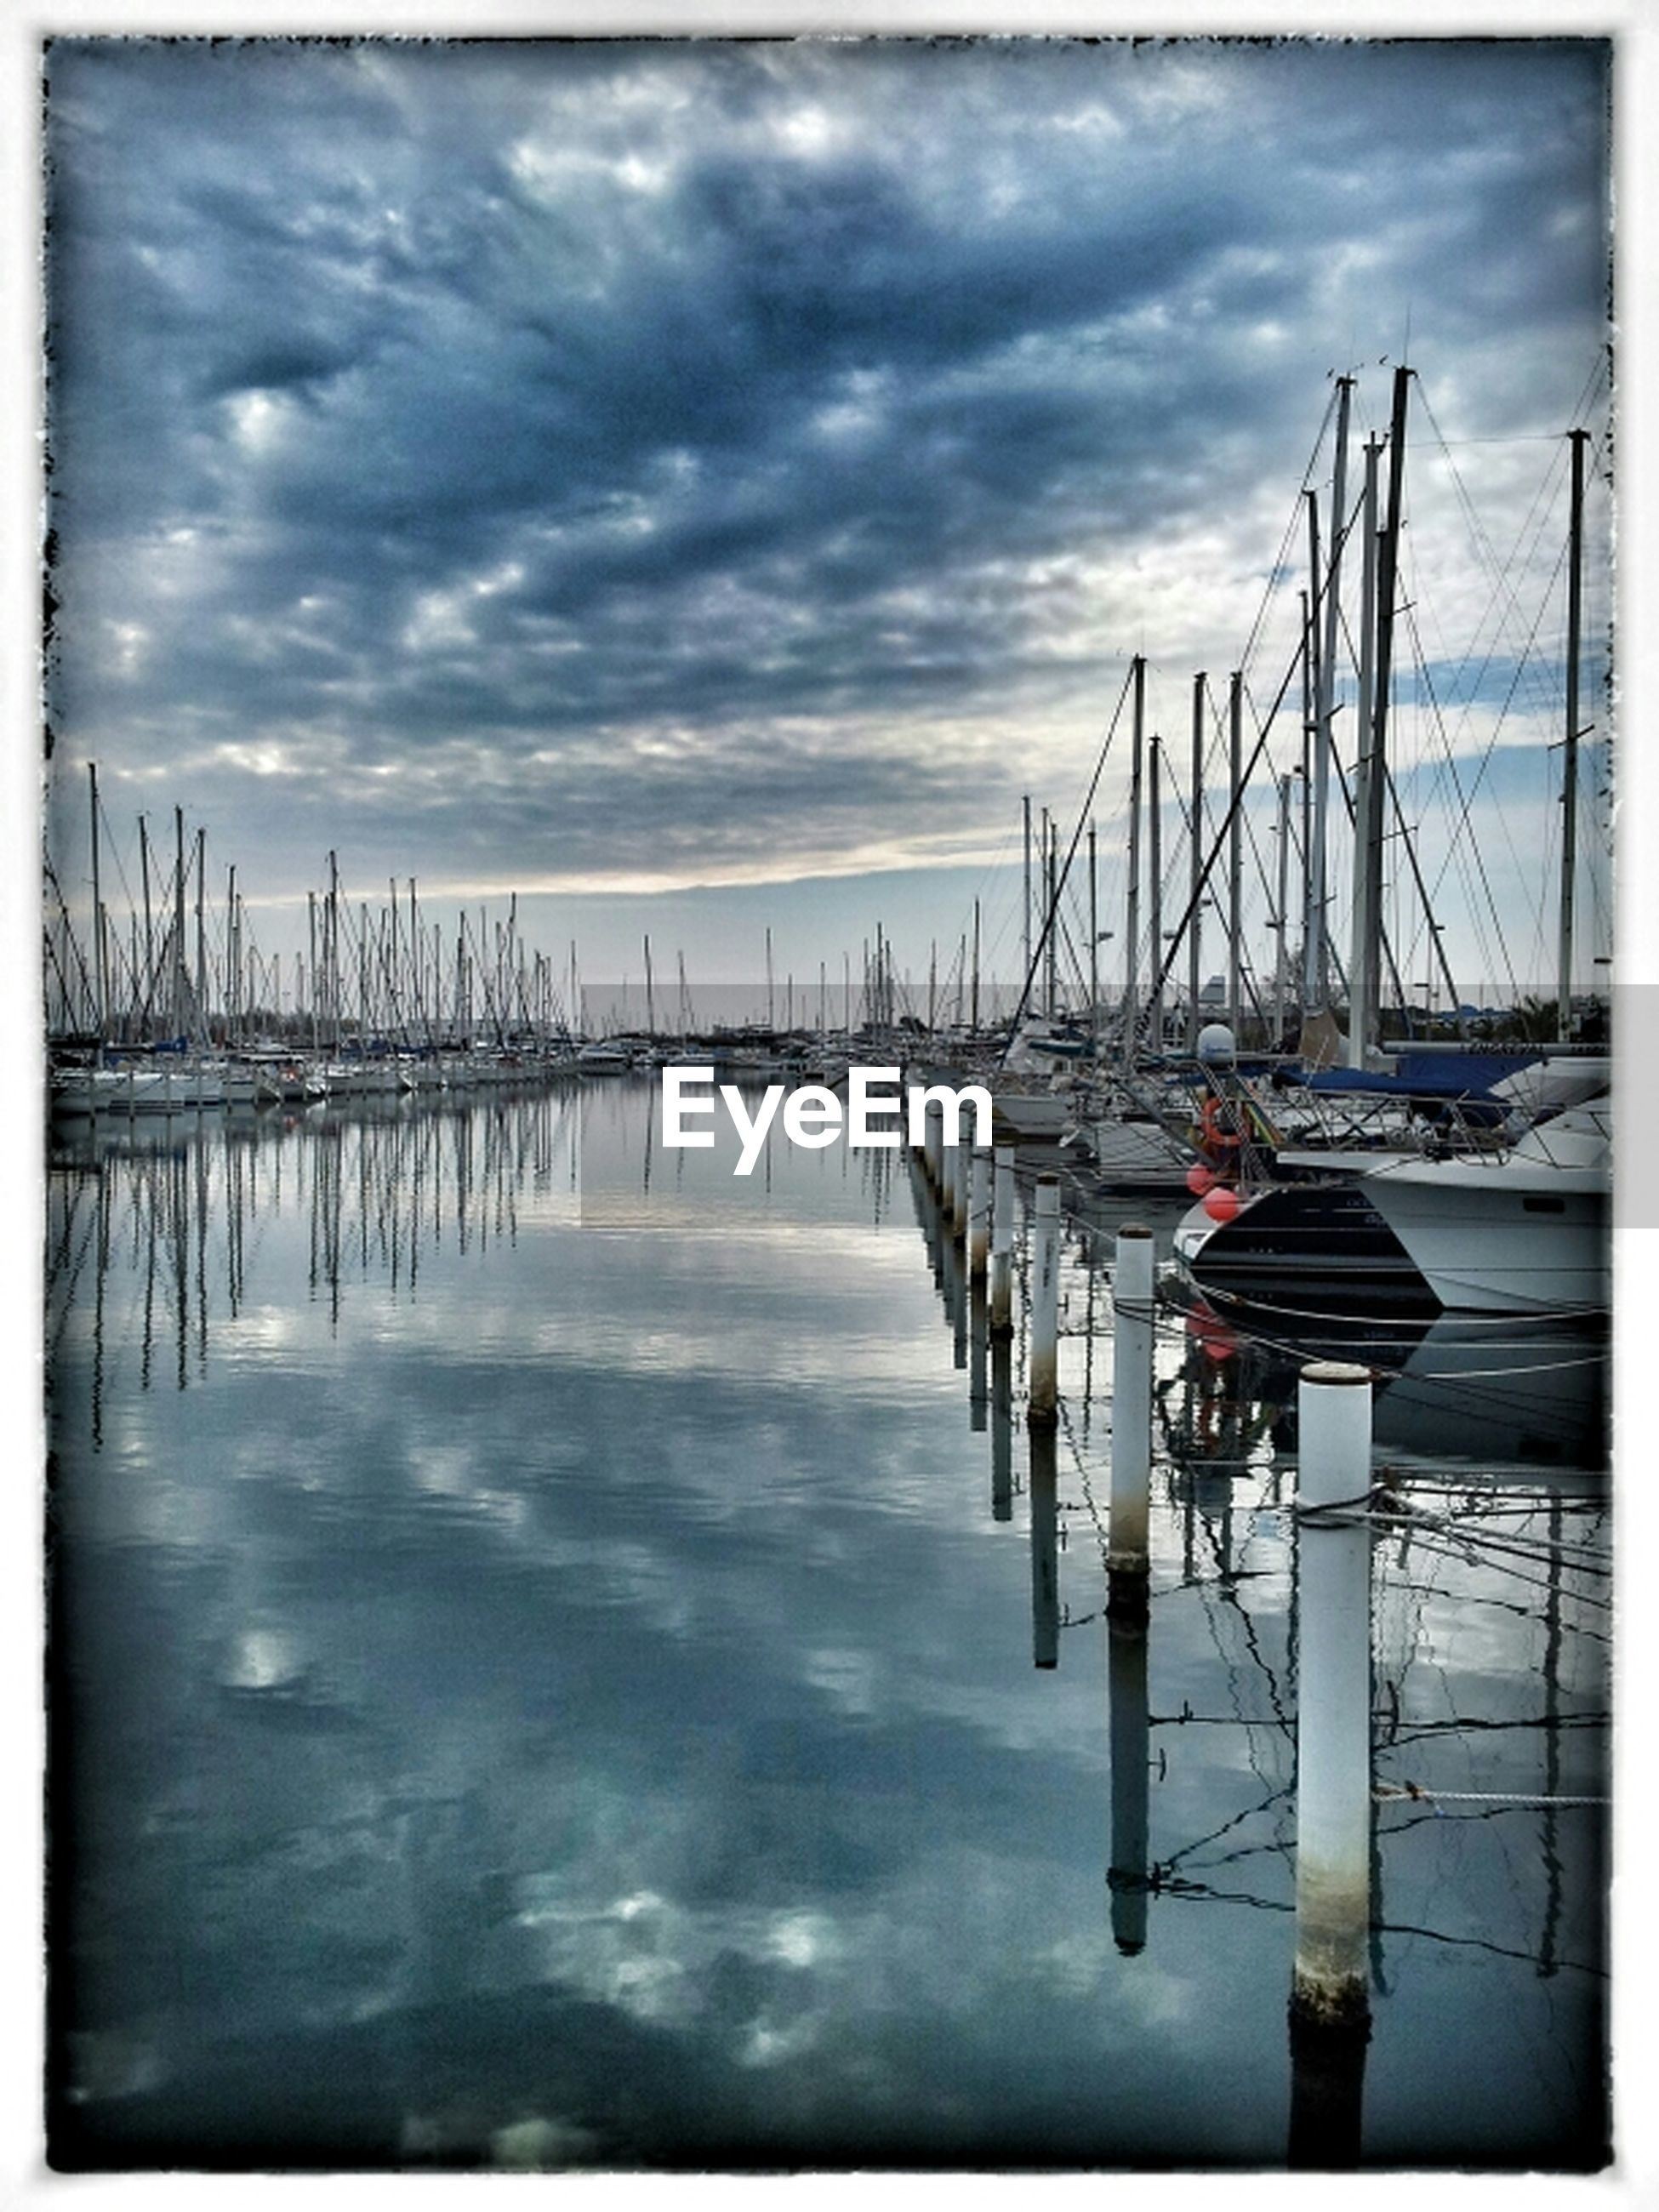 water, sky, nautical vessel, sea, transfer print, moored, transportation, pier, harbor, auto post production filter, boat, cloud - sky, mode of transport, tranquility, tranquil scene, wooden post, cloud, nature, cloudy, reflection